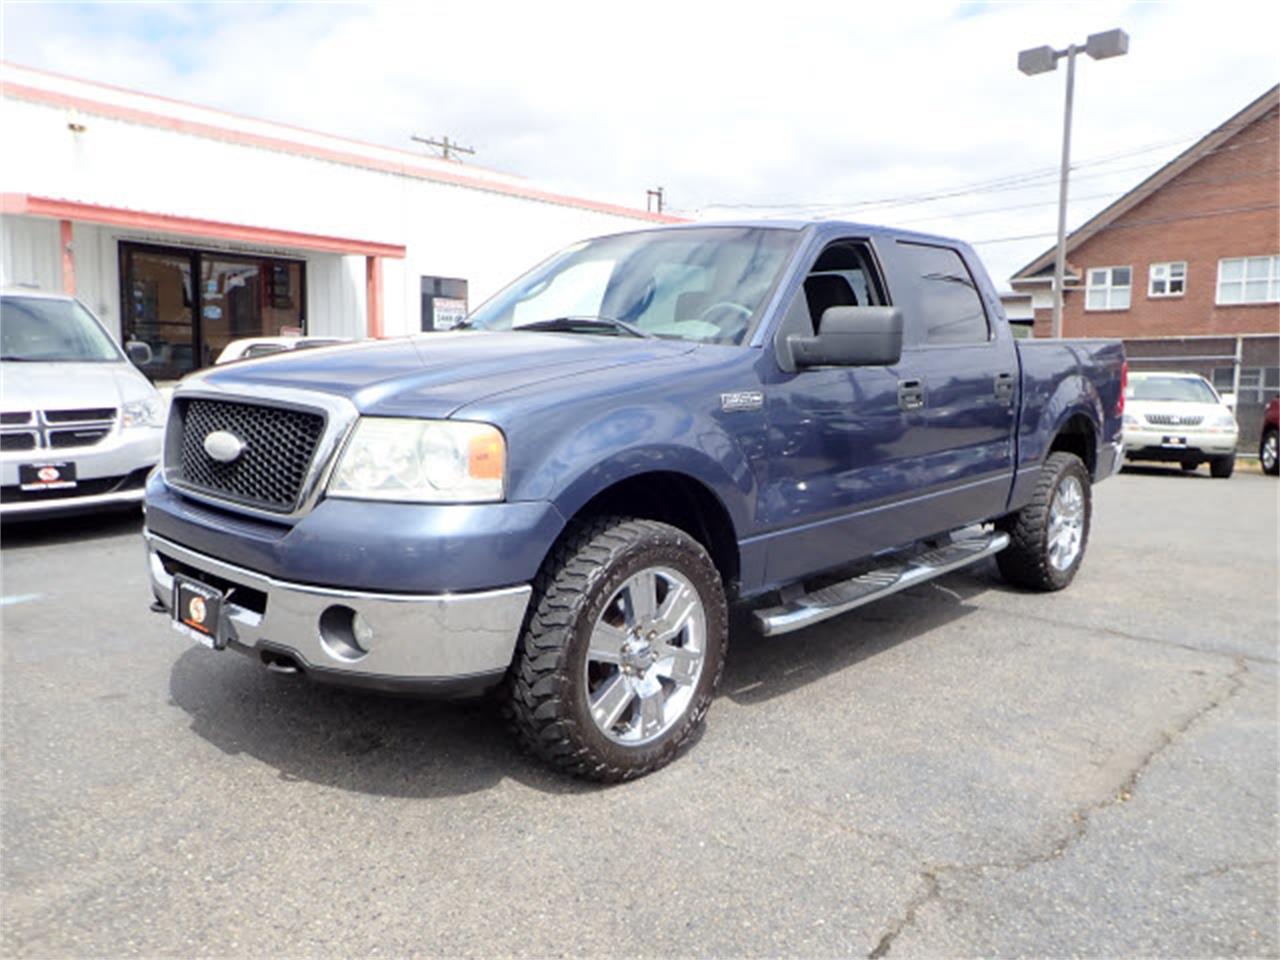 2006 F150 For Sale >> For Sale 2006 Ford F150 In Tacoma Washington